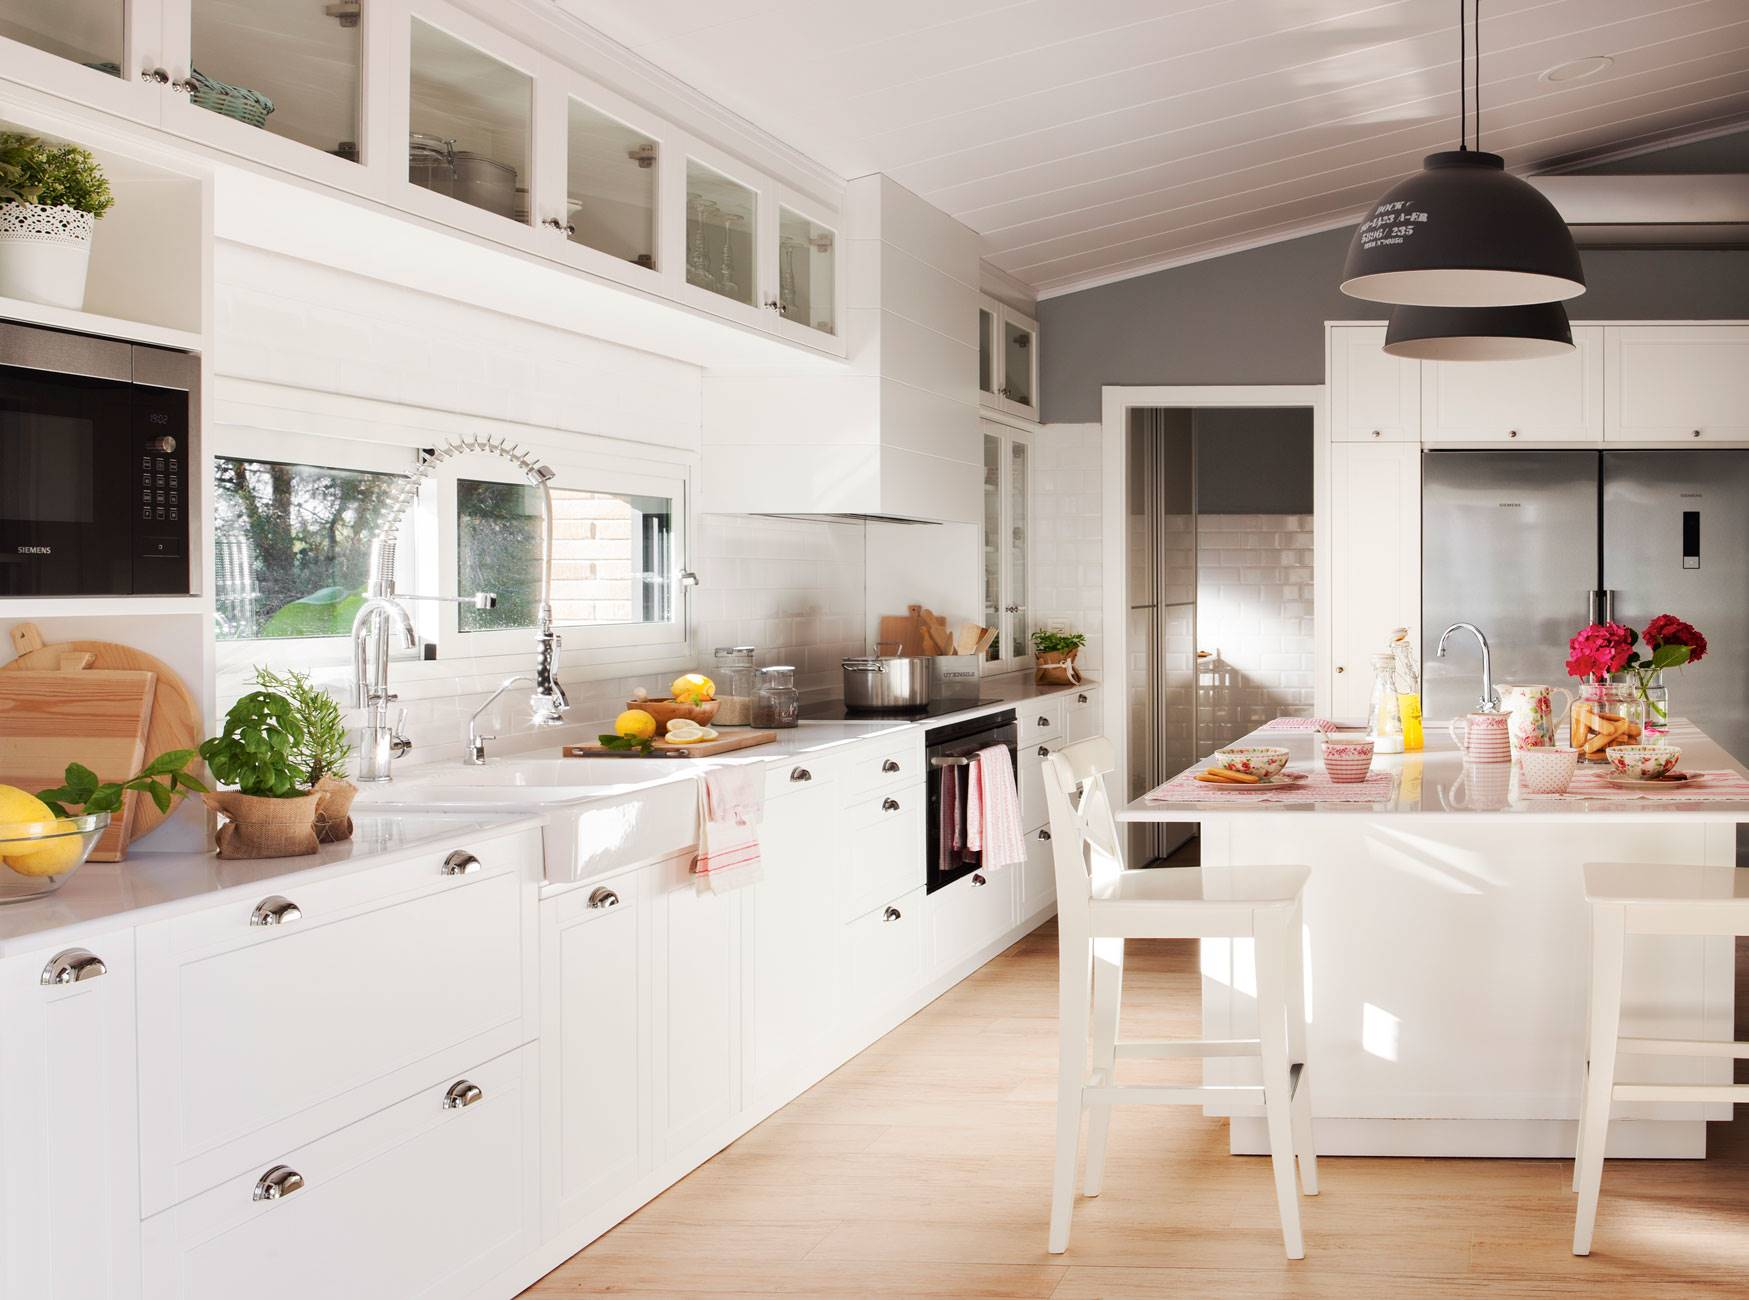 kitchen-white-and-gray-with-parquet-on-the-floor 410608. In gray and white